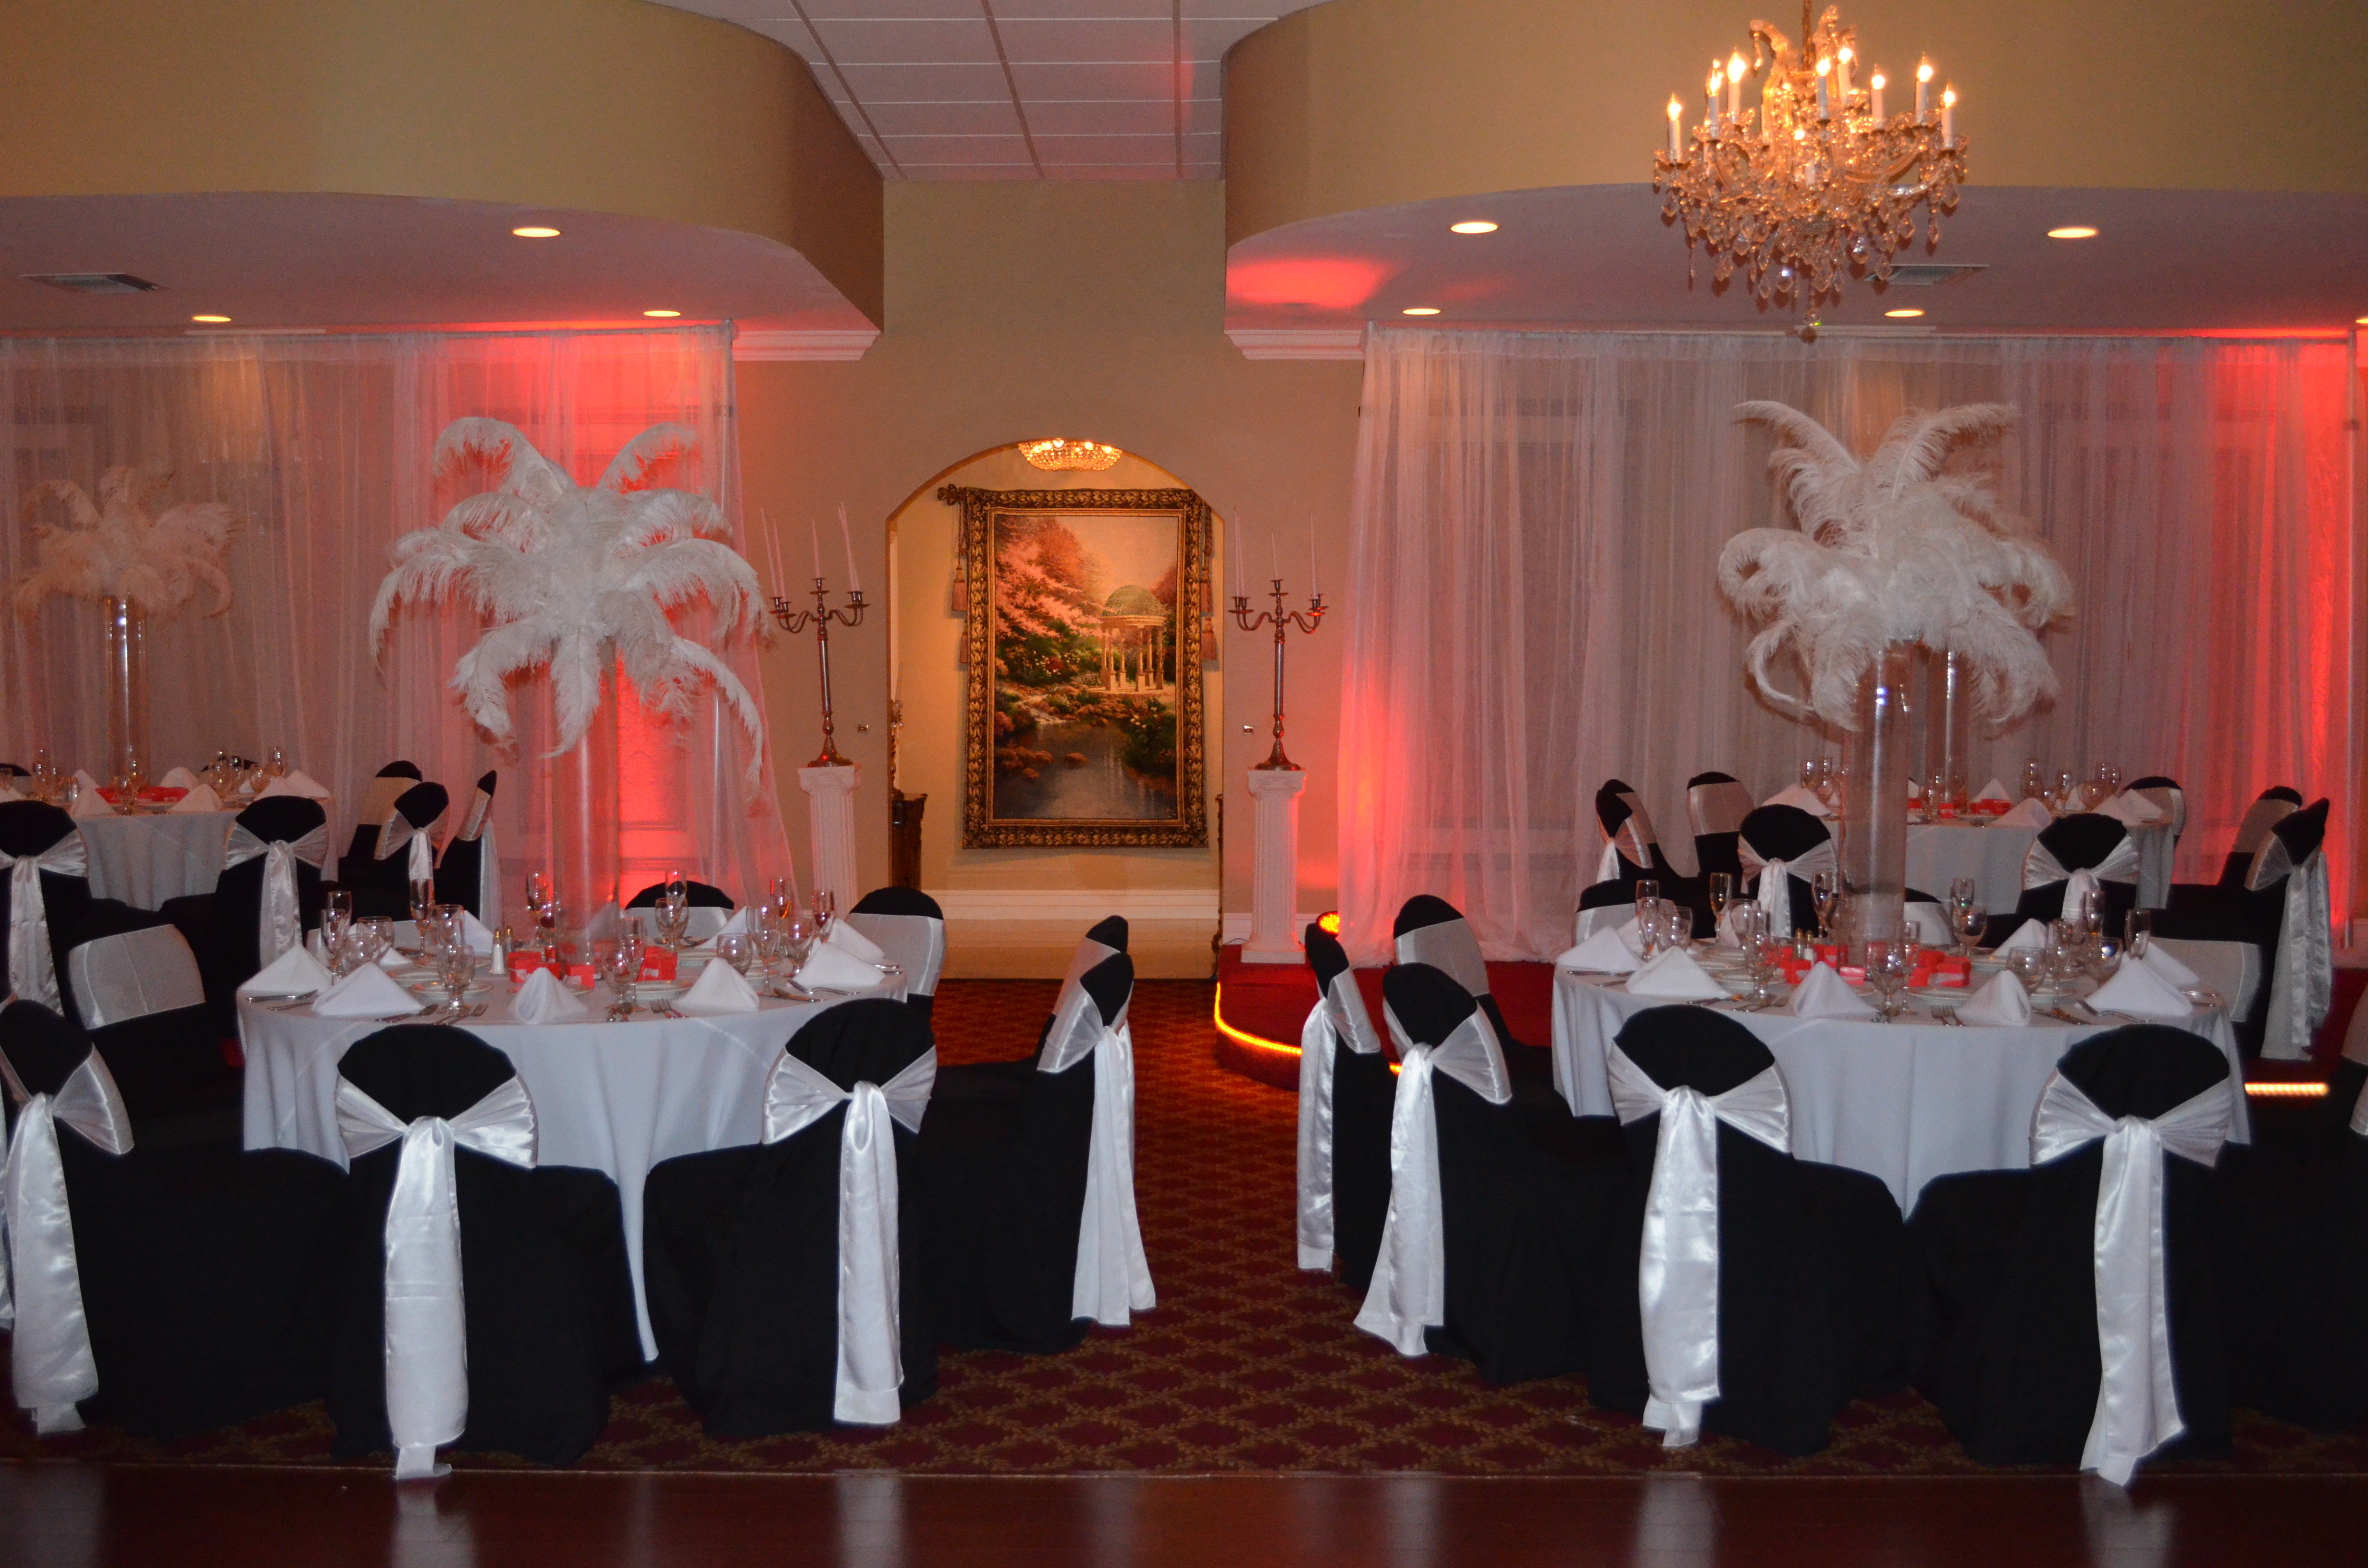 Best Wedding Venues Miami Laurette 15Th Birthday Party This Month